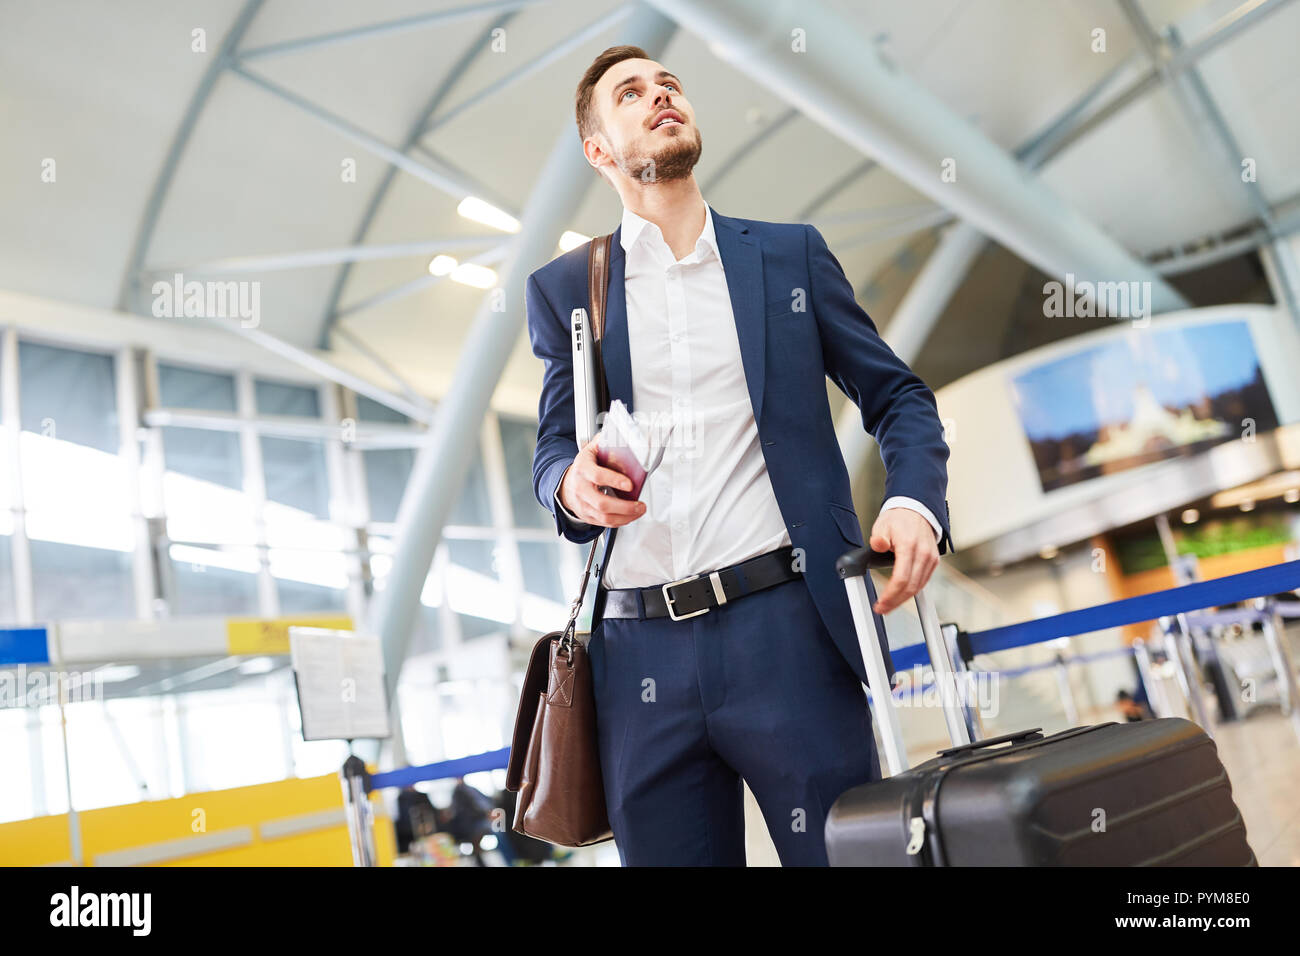 Business man in the airport terminal at the stopover looks for the connecting flight - Stock Image